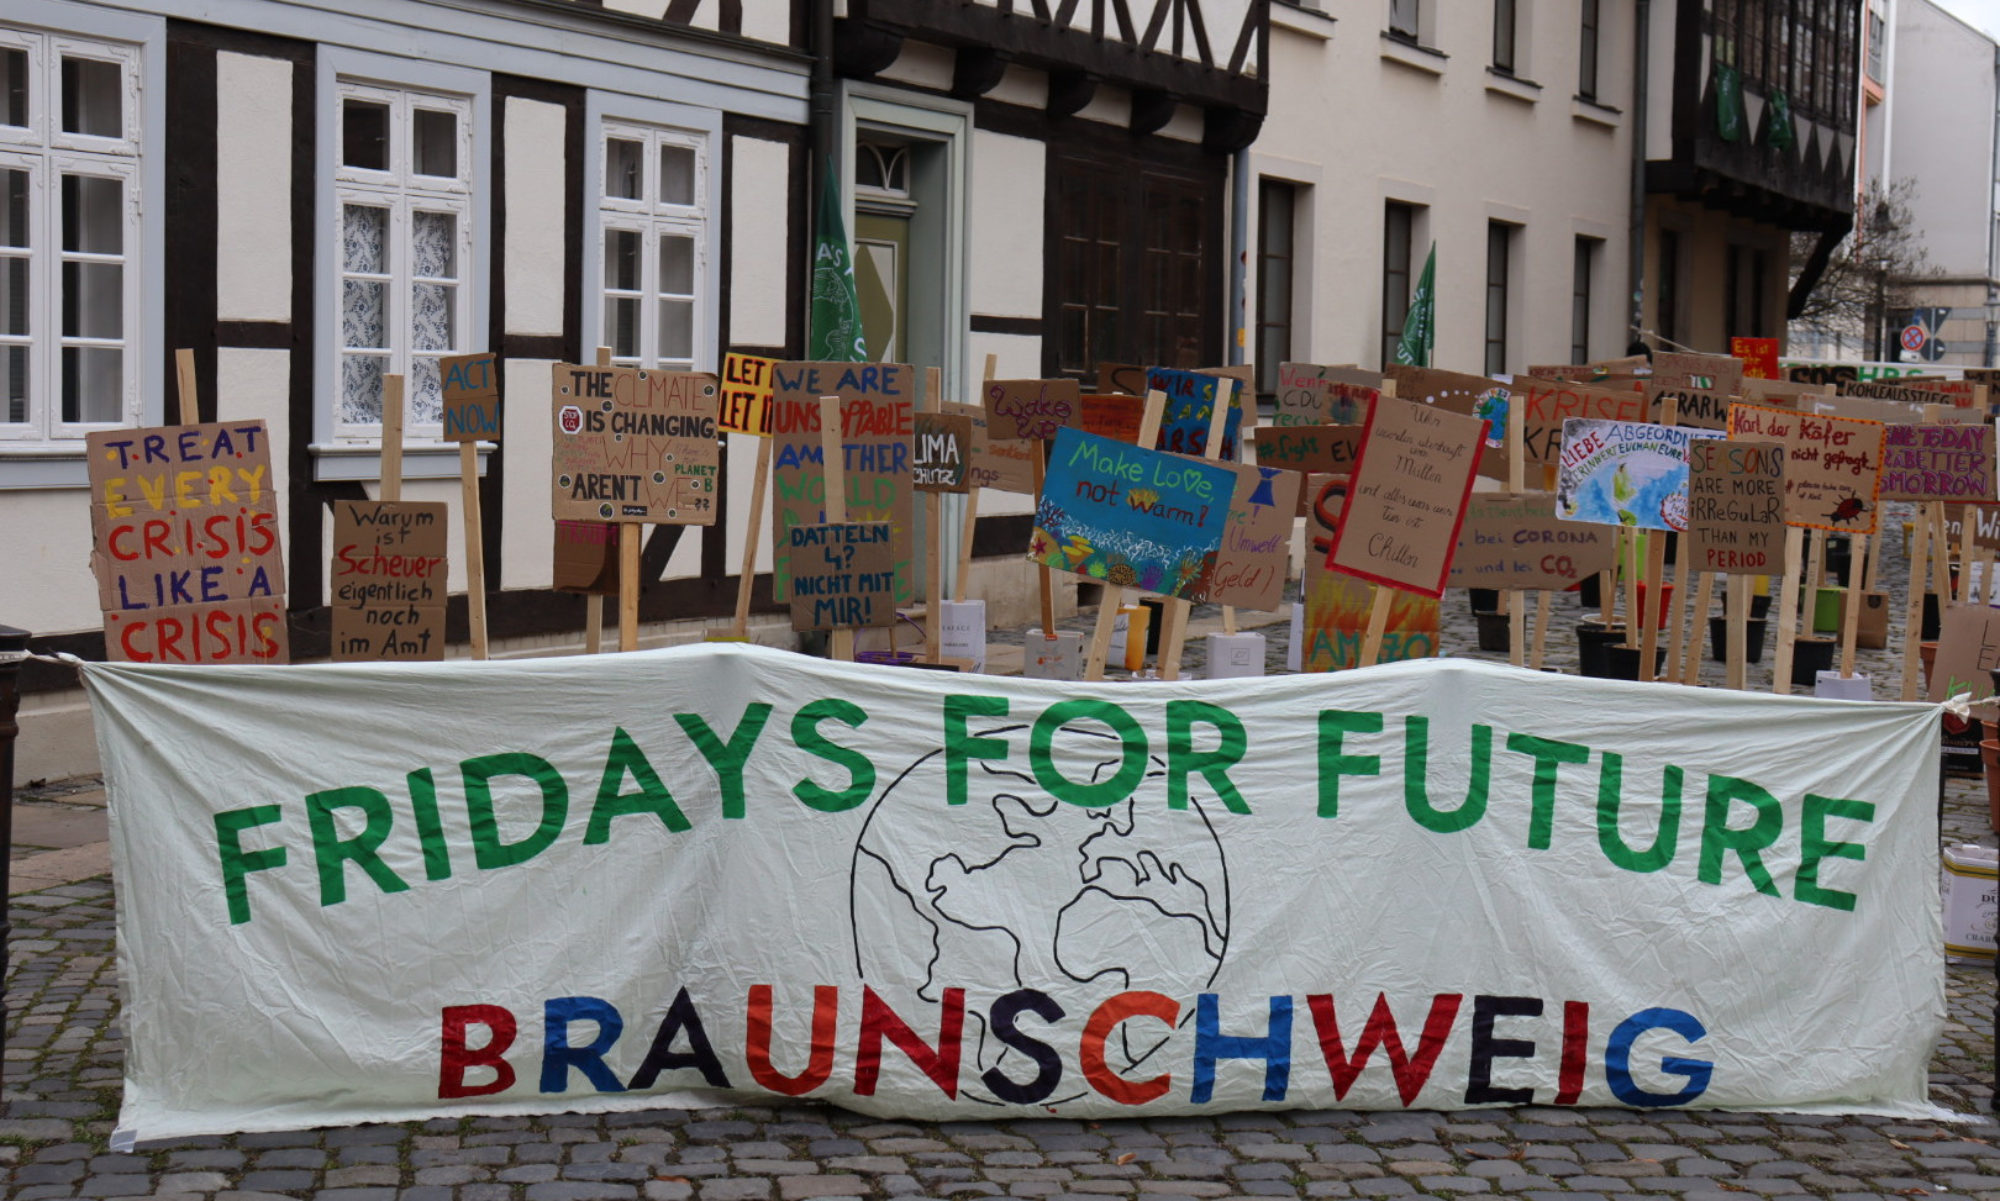 Fridays for Future Braunschweig